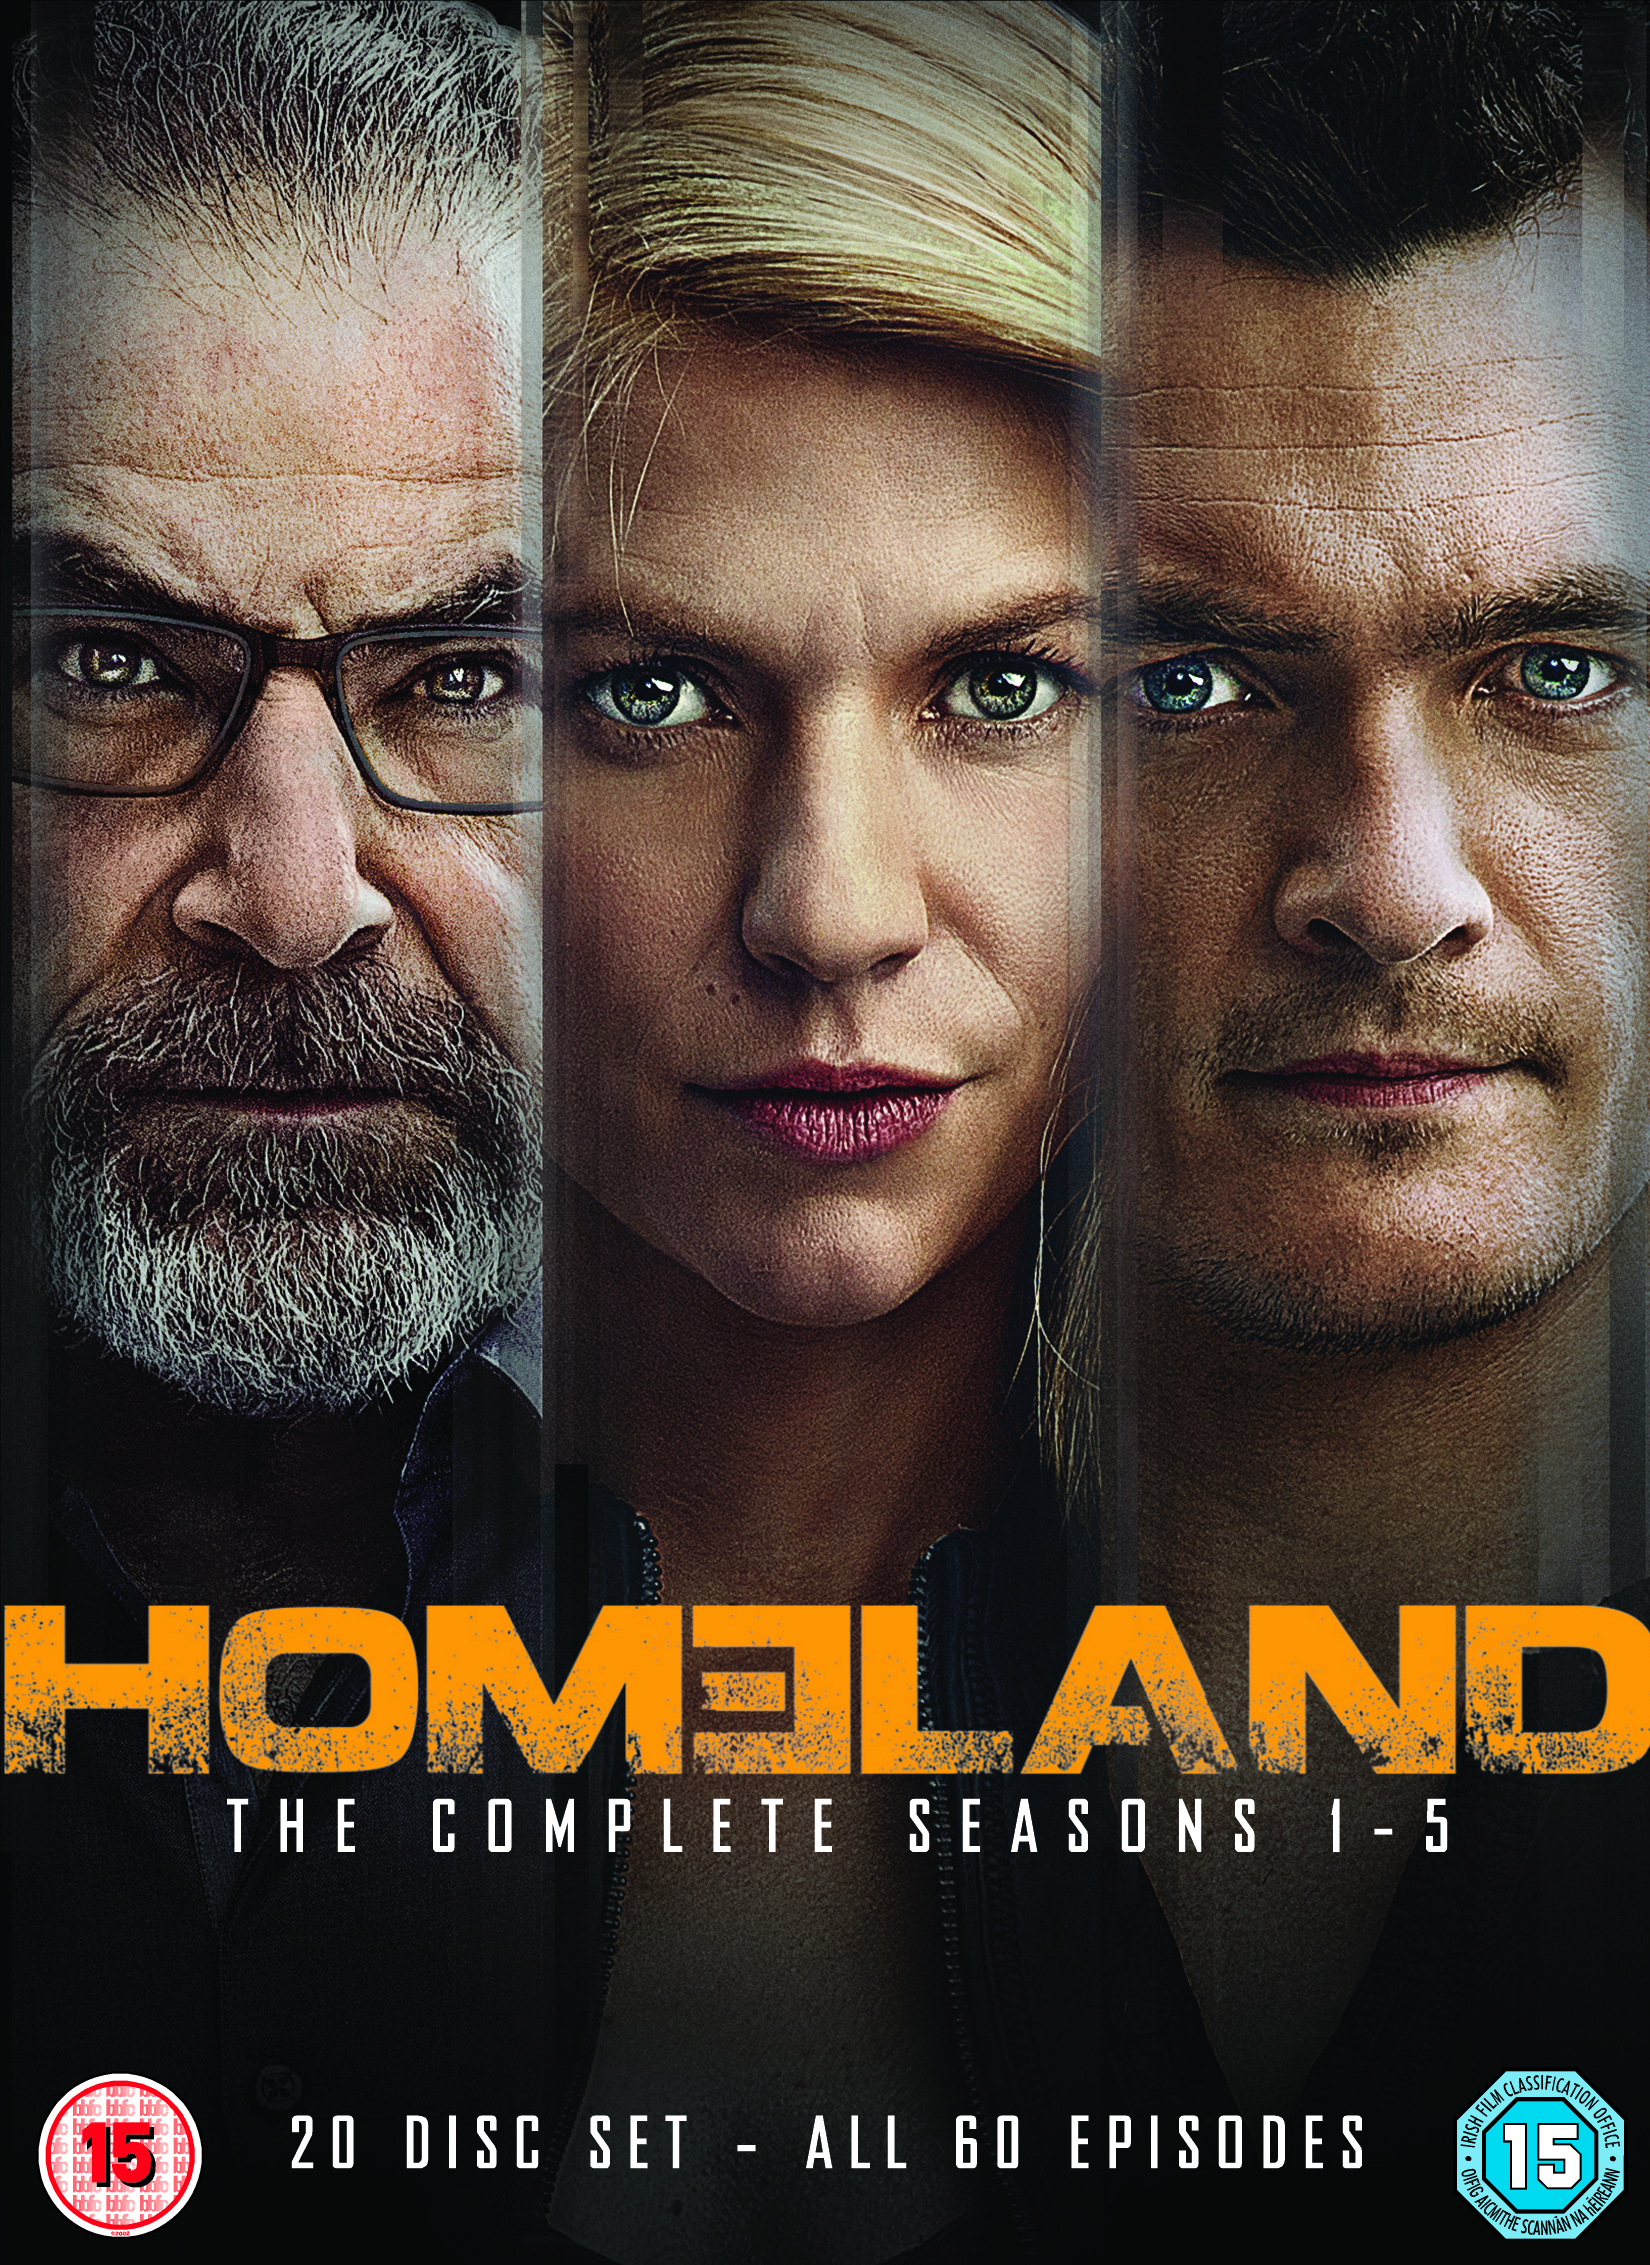 homeland season 1-5 dvd box set